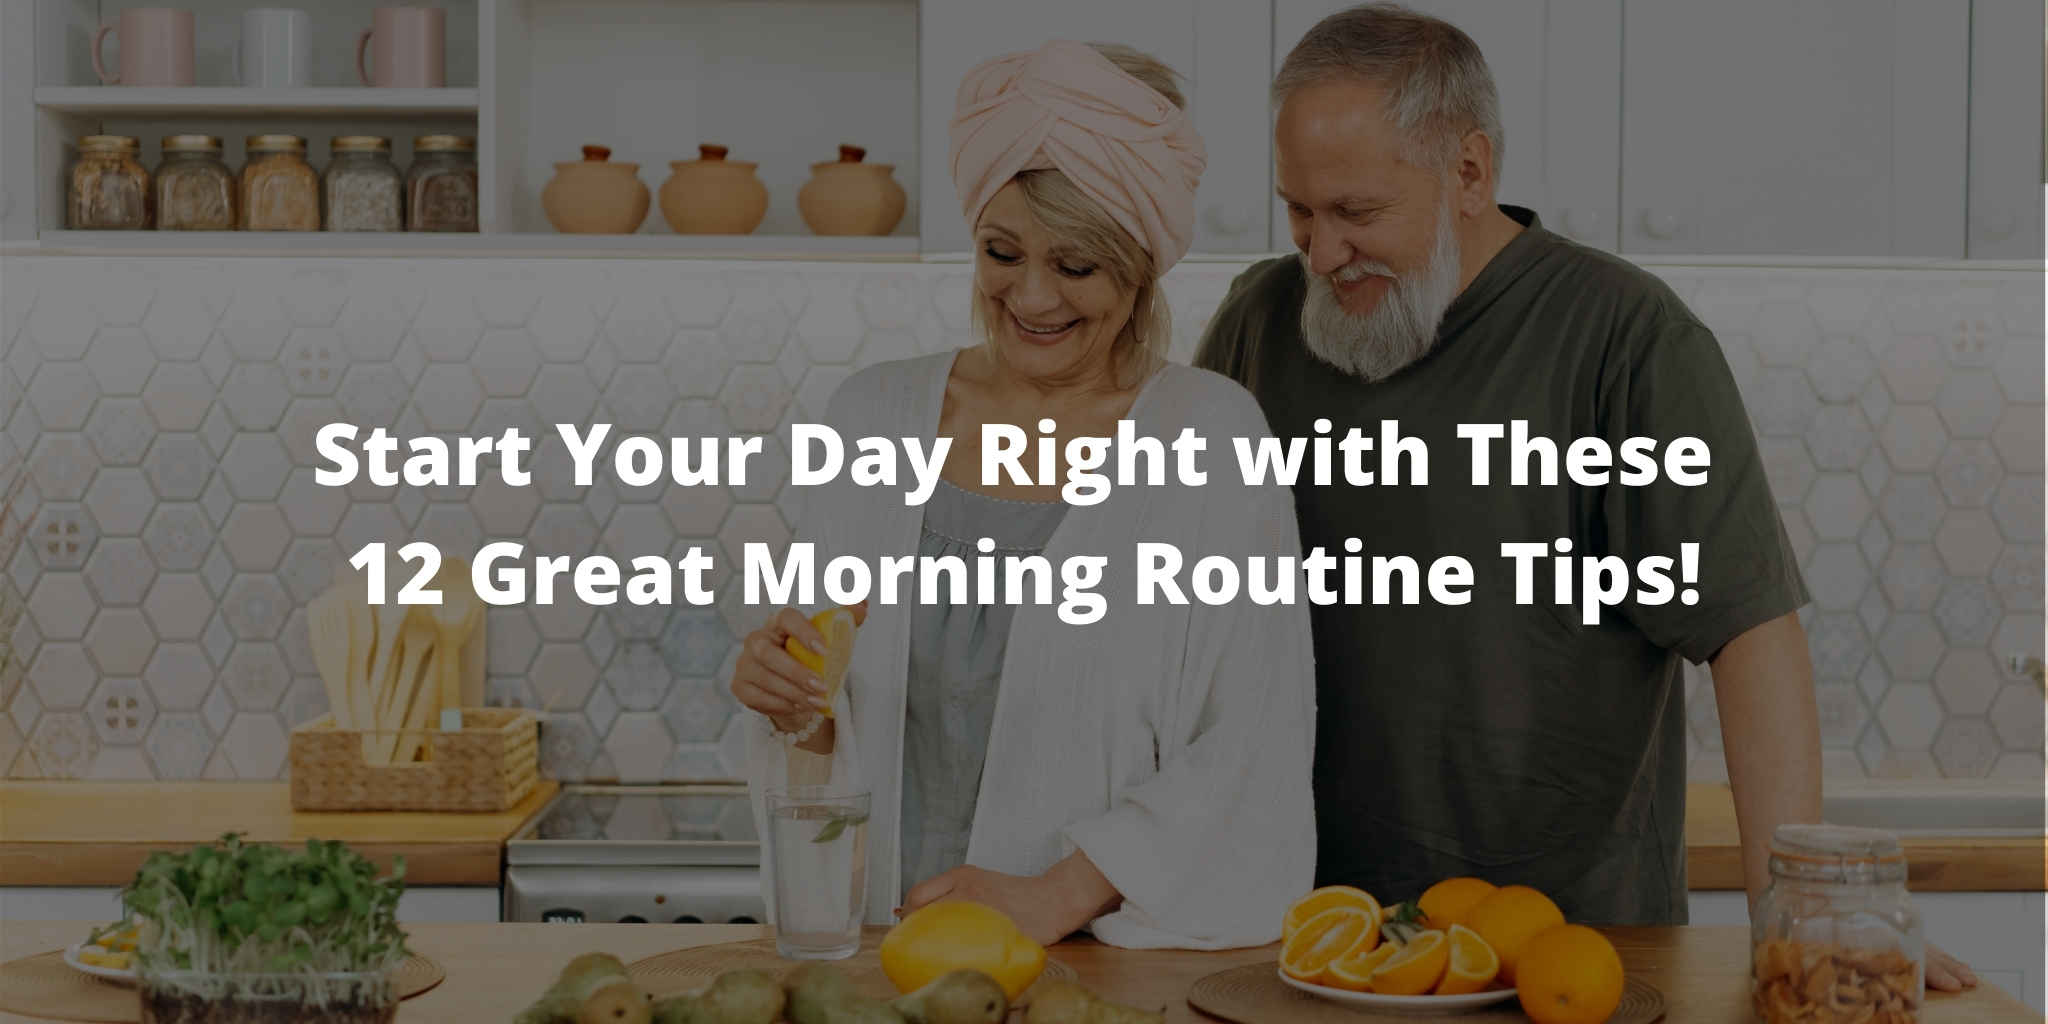 Start Your Day Right with These 12 Great Morning Routine Tips!